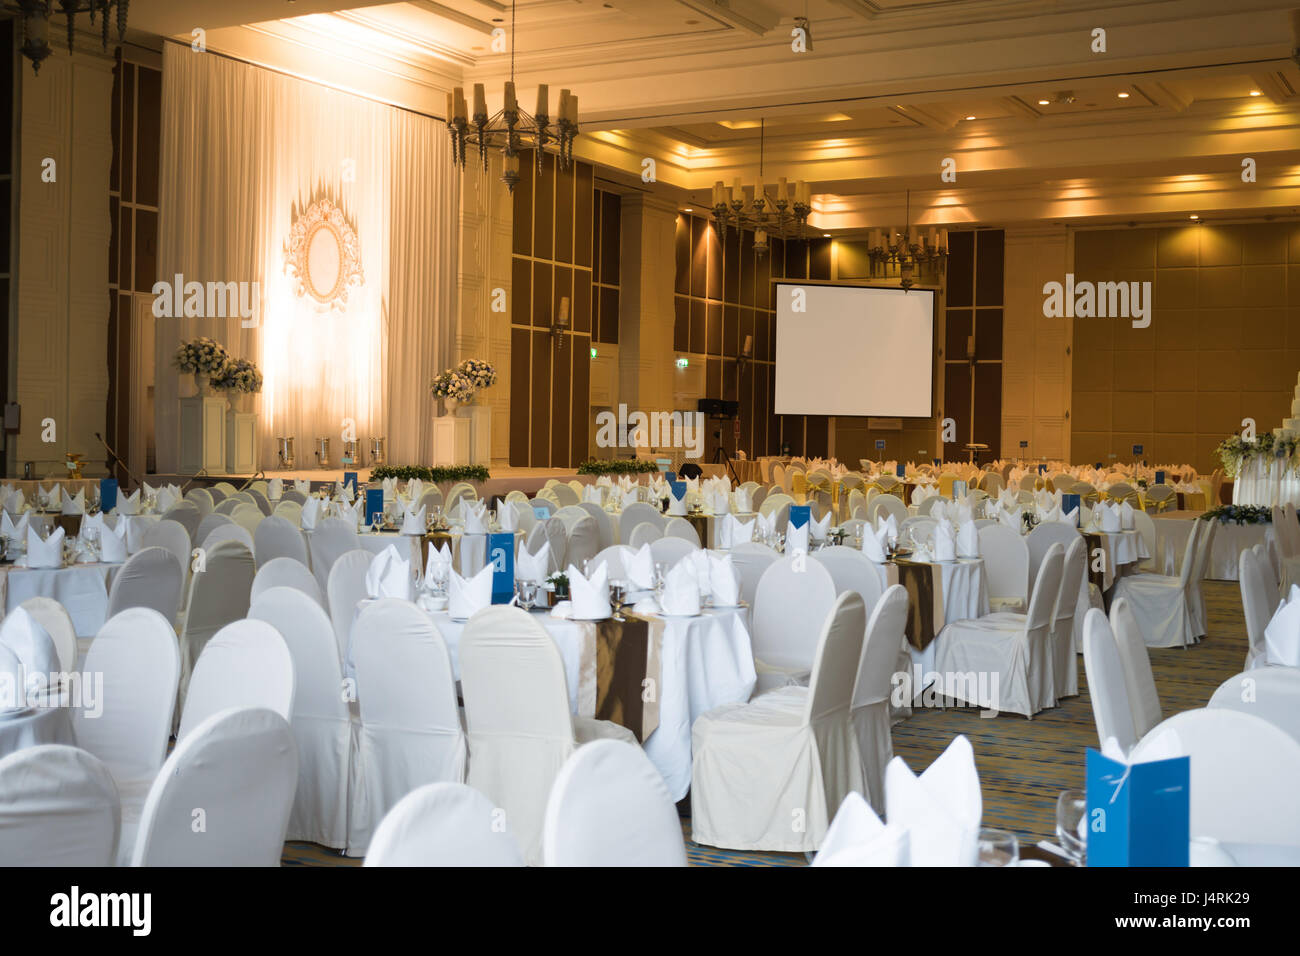 Beautiful  ballroom decorated for a wedding reception with clipping path of projector screen Stock Photo